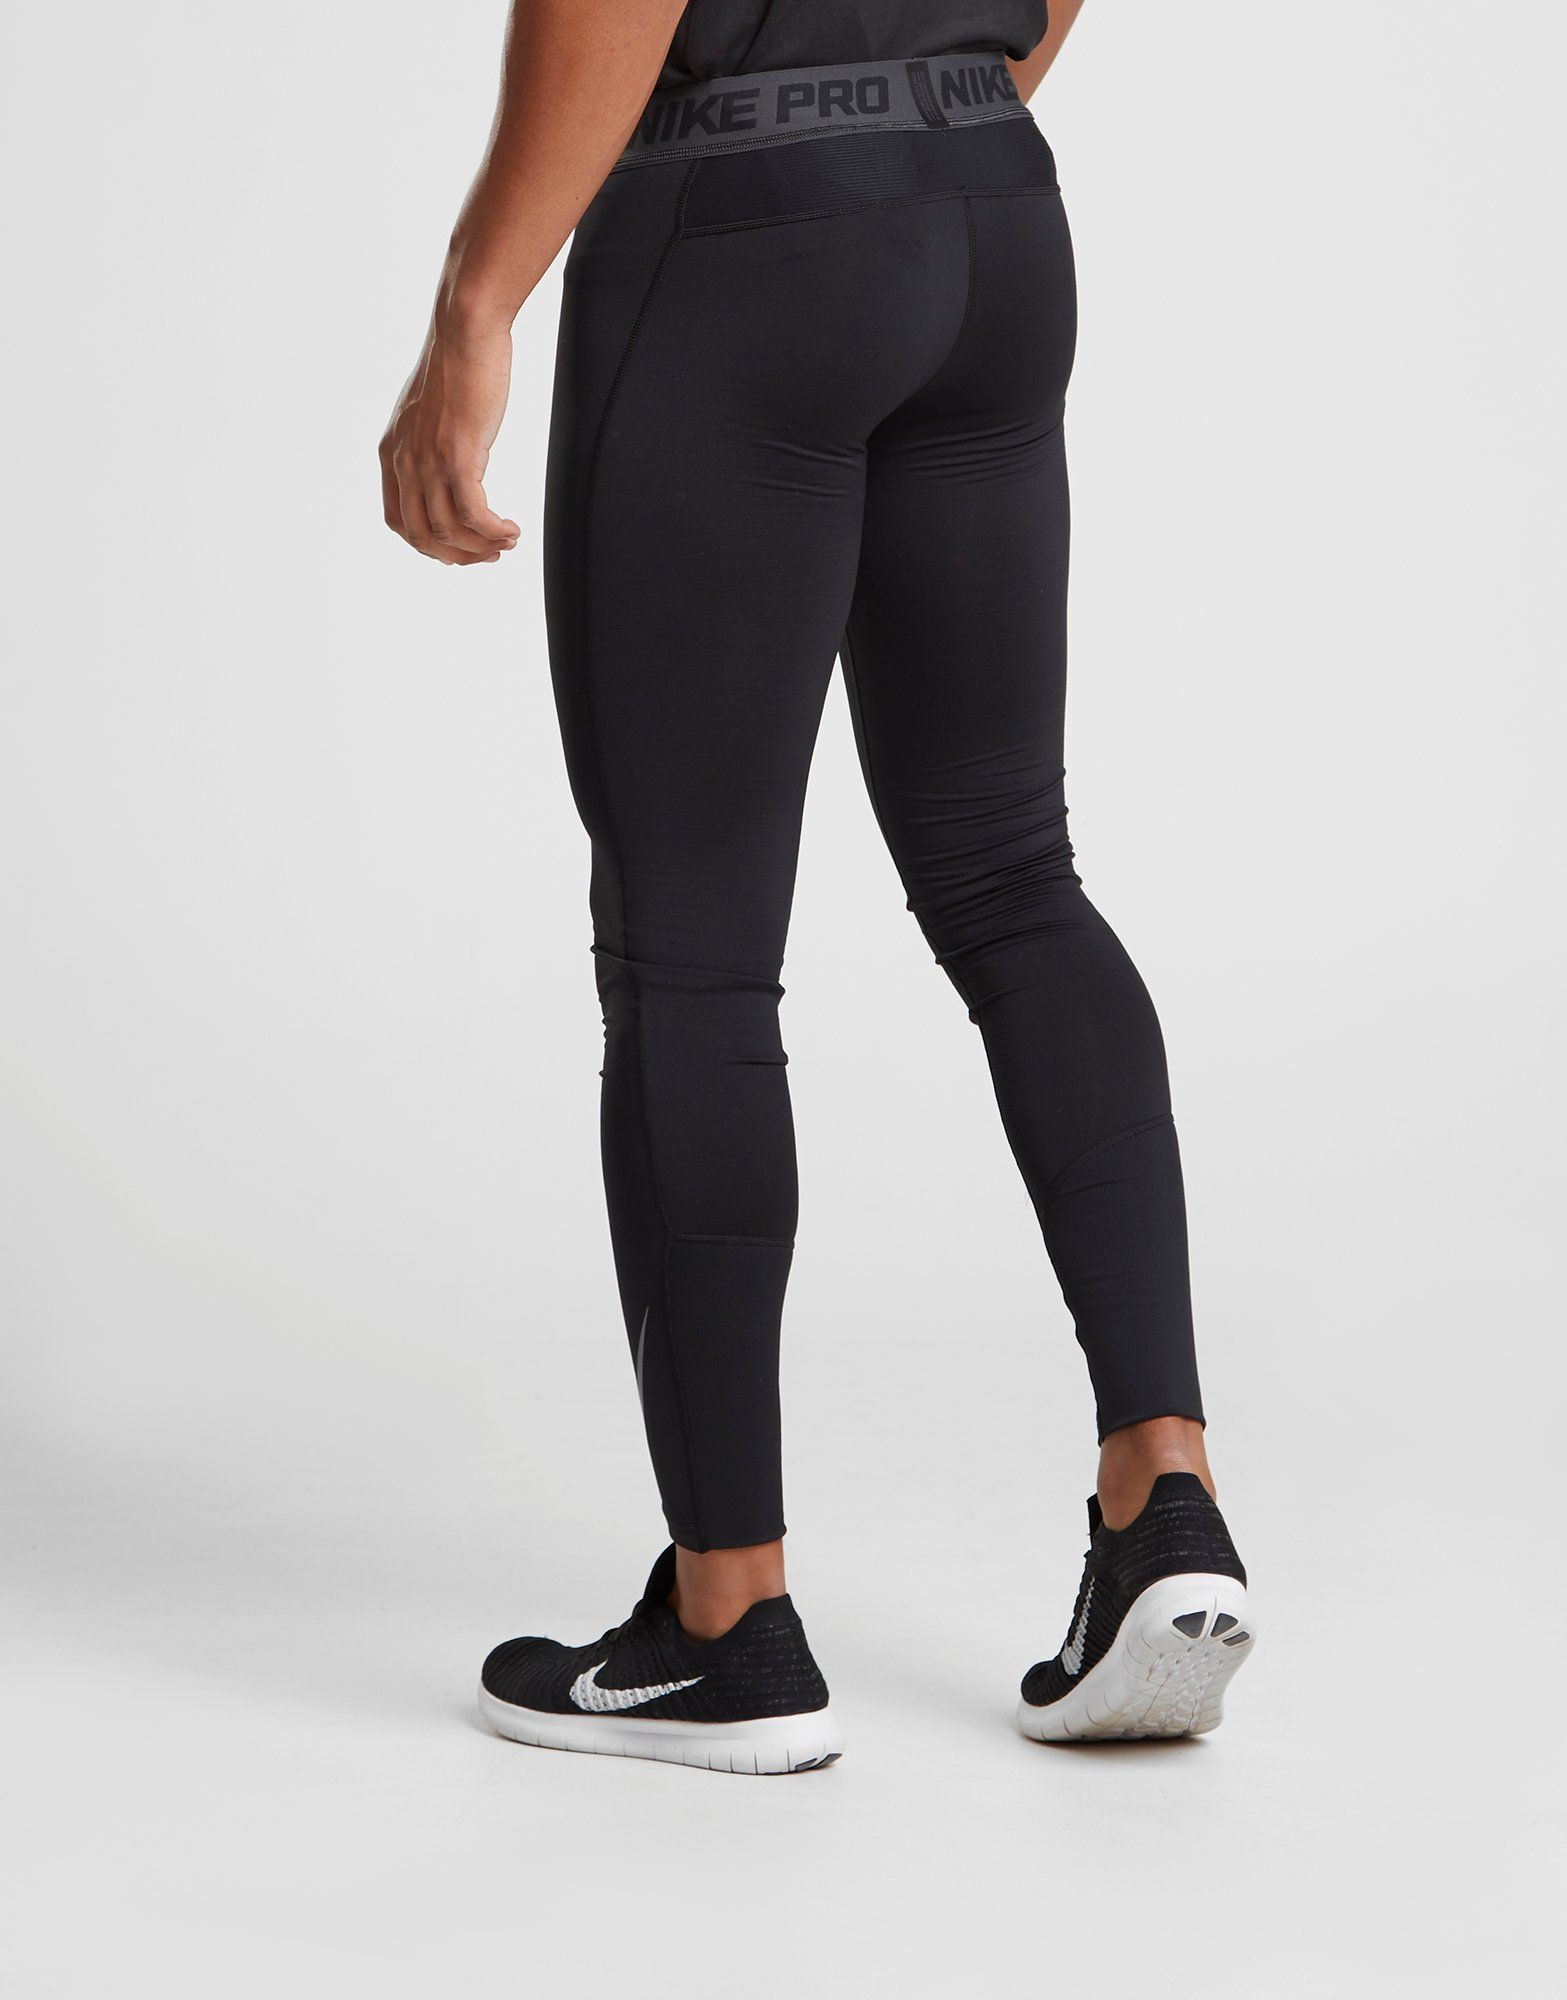 Nike Pro Therma Tights